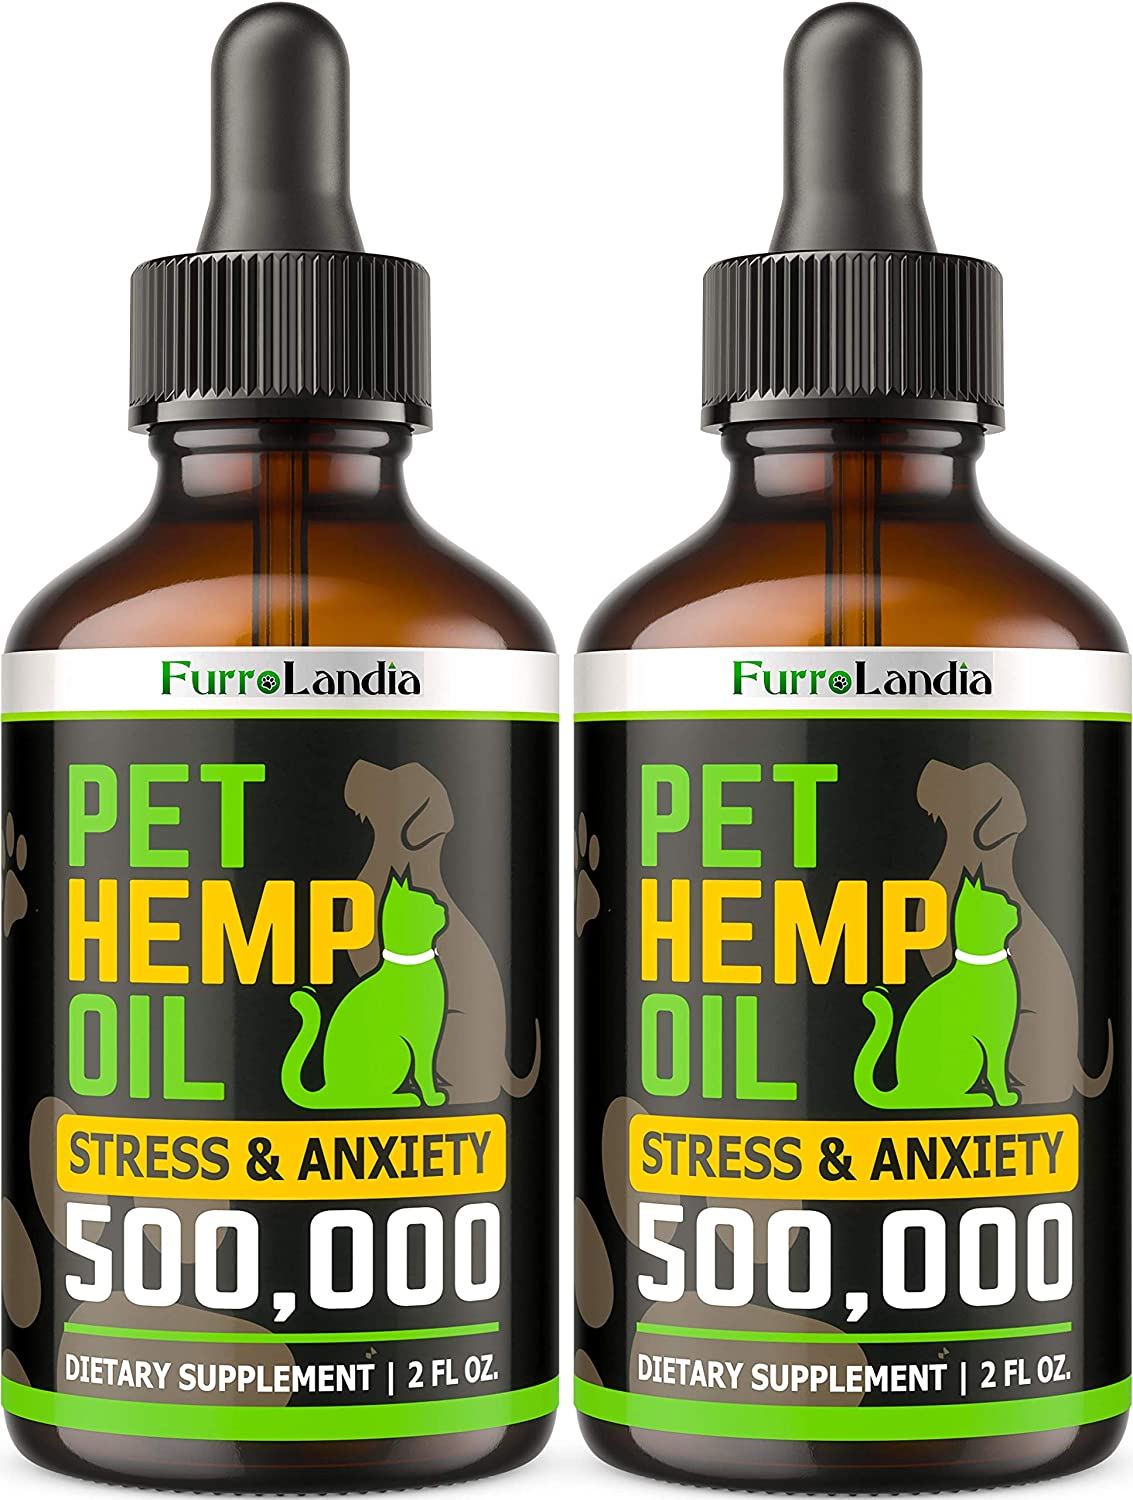 (2 Pack) Hemp Oil for Dogs and Cats - 500,000 - Separation Anxiety, Joint Pain, Stress & Inflammation Relief - Pet Hemp Oil Calming Drops - Dog Calming Aid - Rich in Omega 3 6 9 | Made in USA